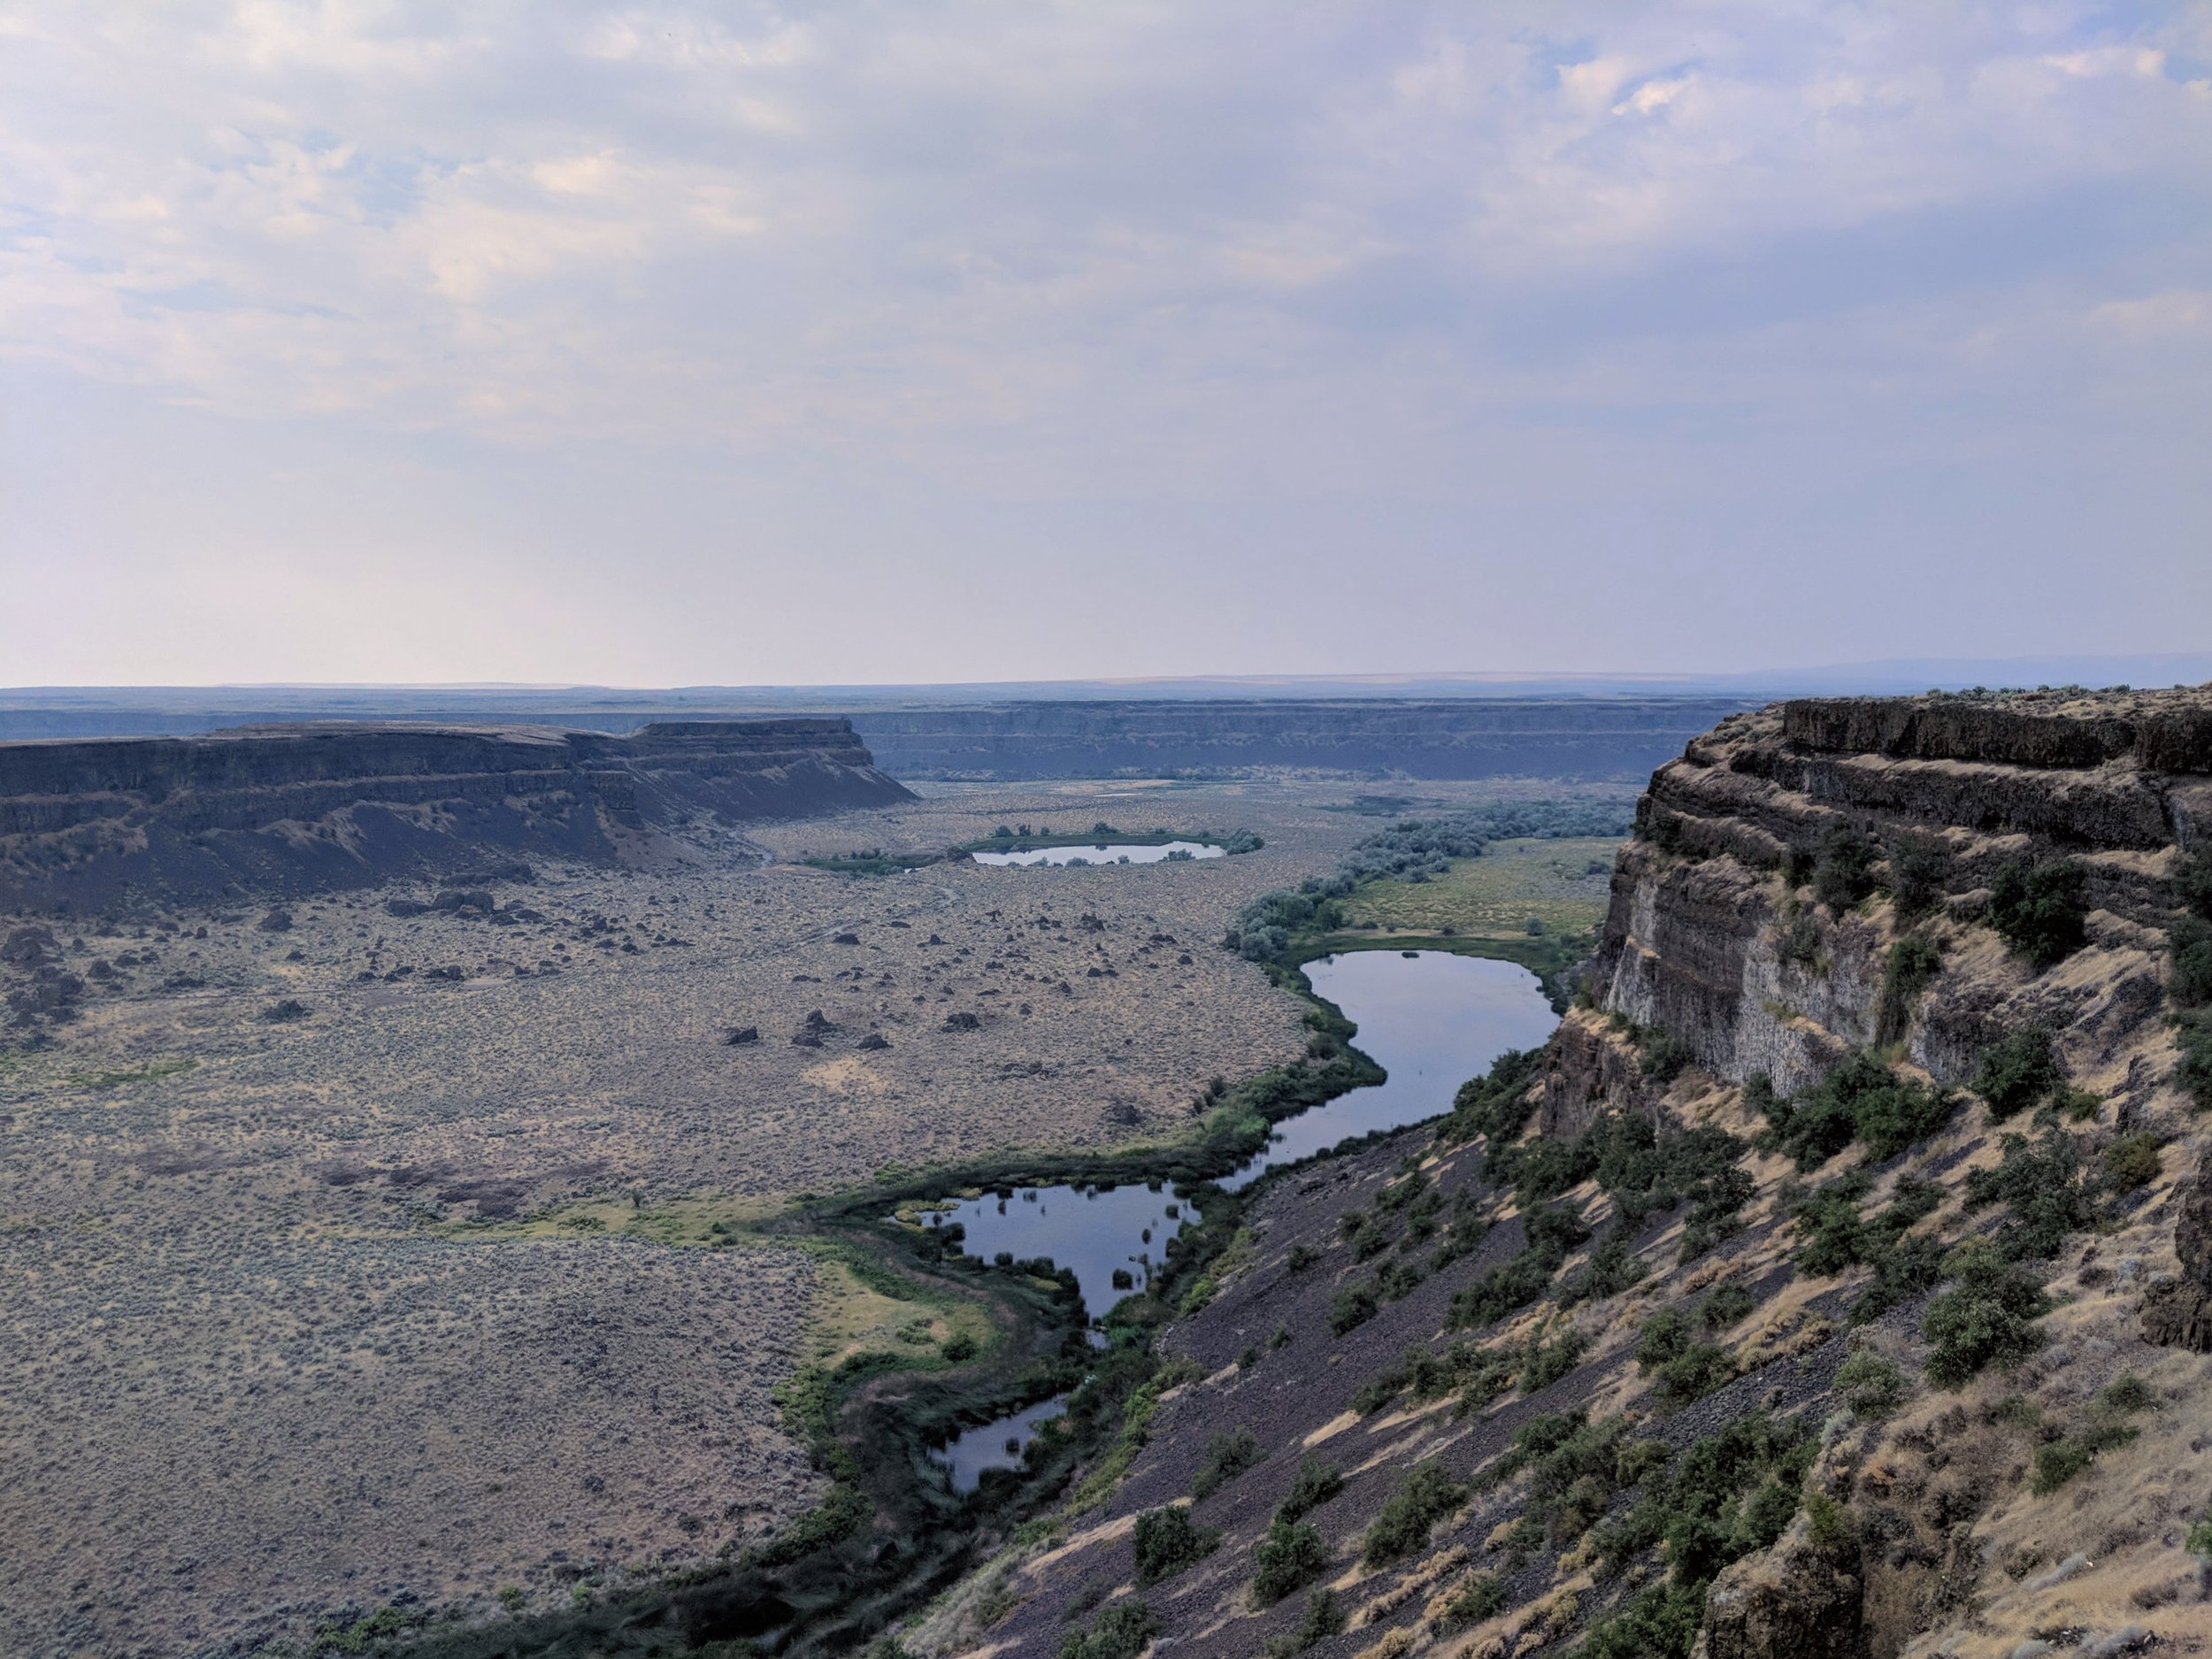 Looking southwest from Dry Falls Visitor Center